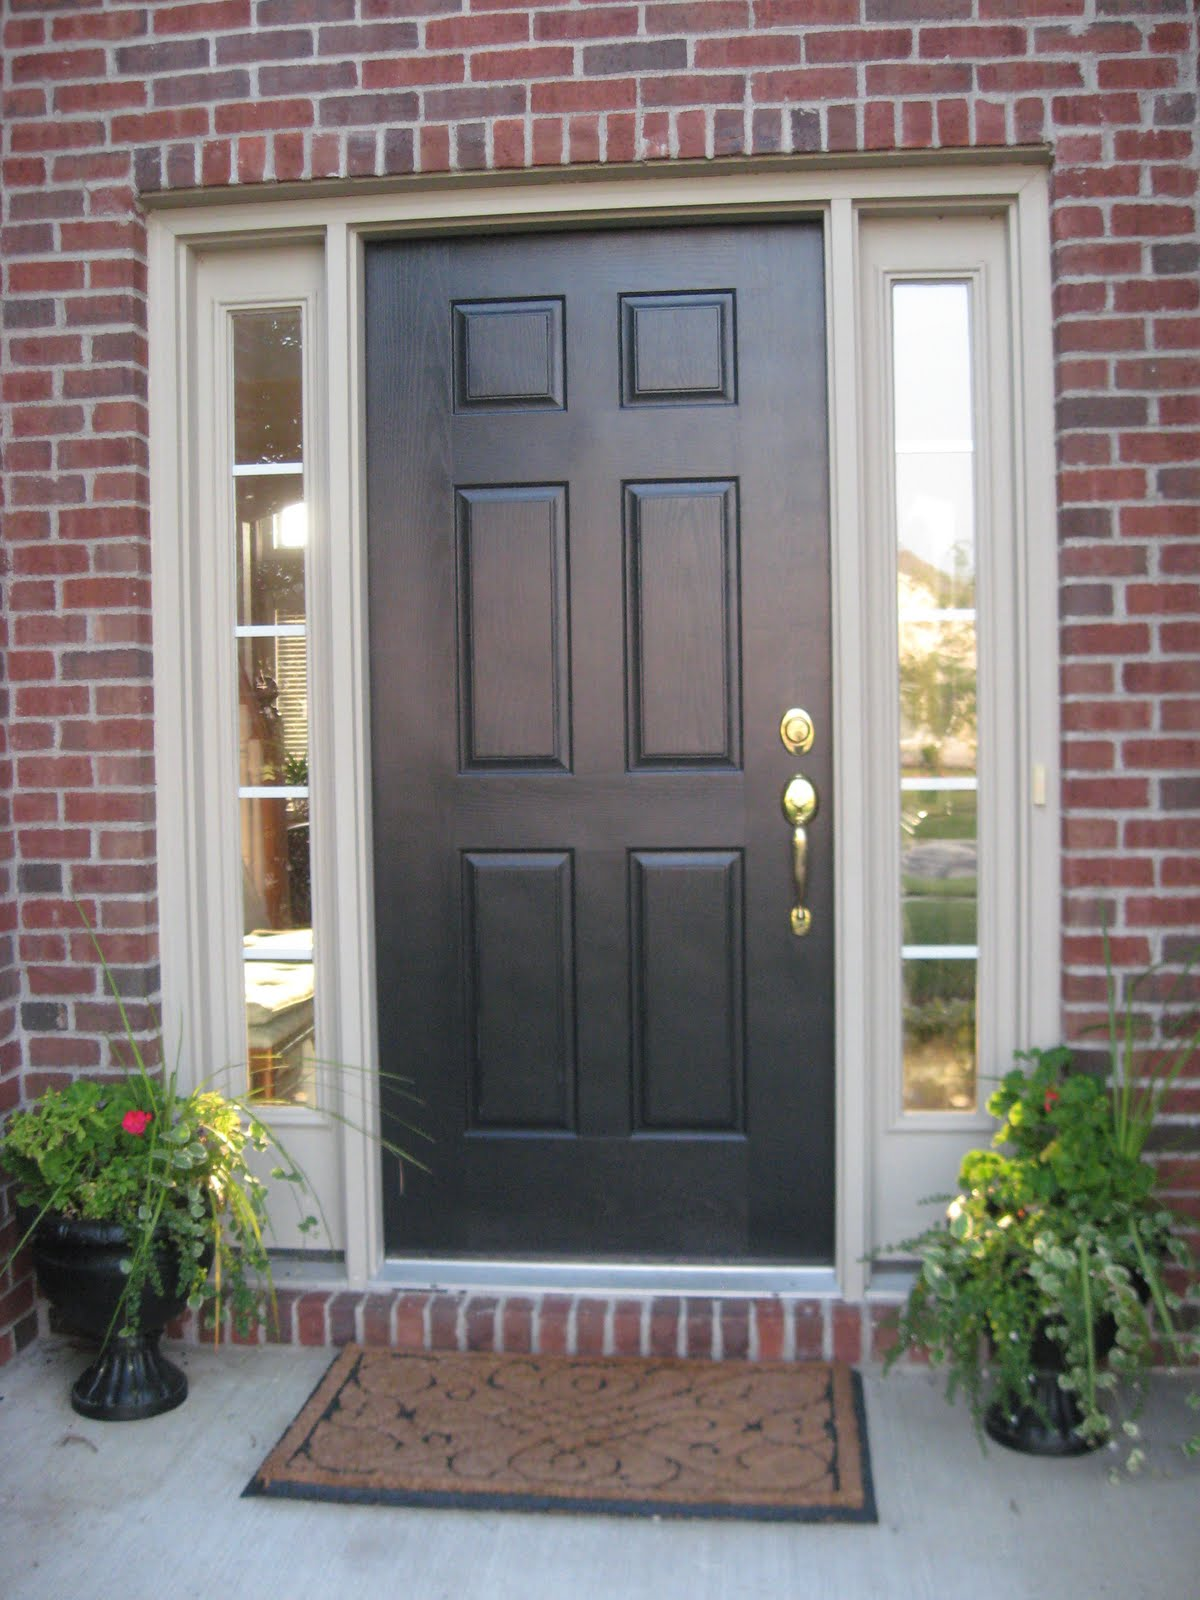 1600 #466135  Exterior Front Door Designs Furthermore Front Door Paint. On Front picture/photo Front Doors Pictures 40791200